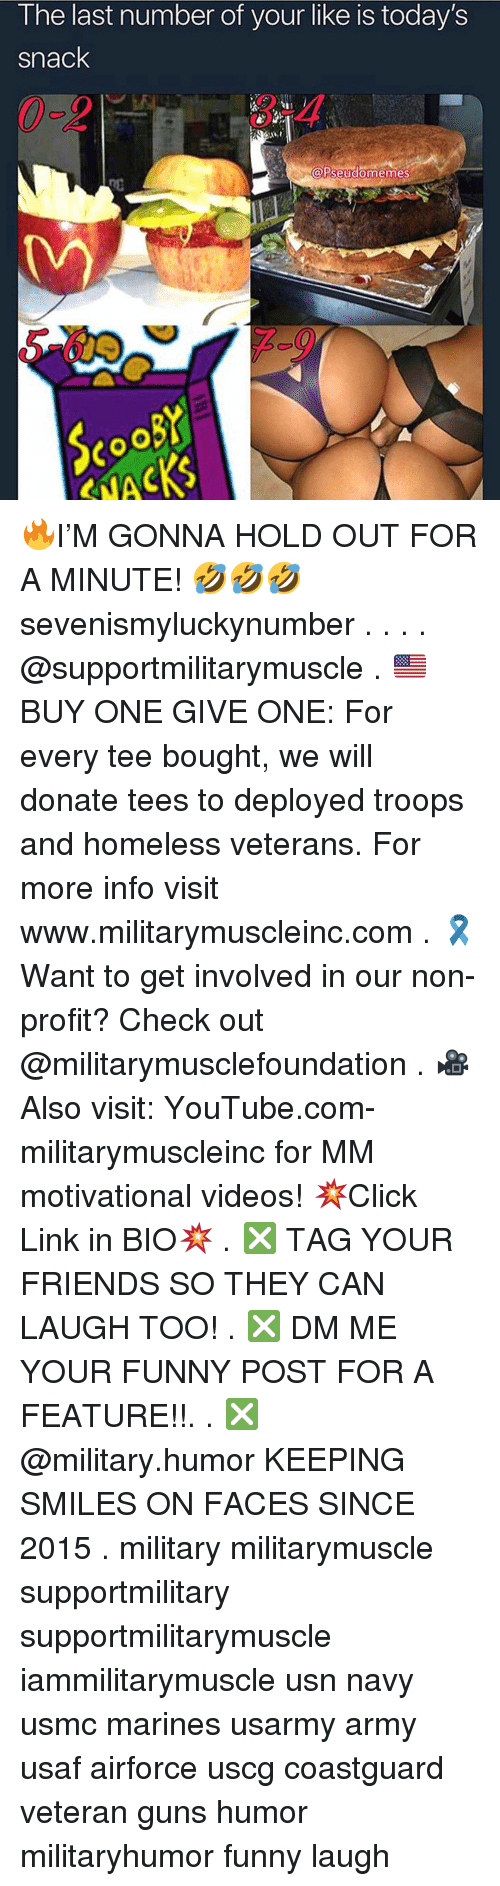 Get Involved: I he last number of your like is today's  snack  3-4  A  PseudomemeS 🔥I'M GONNA HOLD OUT FOR A MINUTE! 🤣🤣🤣 sevenismyluckynumber . . . . @supportmilitarymuscle . 🇺🇸BUY ONE GIVE ONE: For every tee bought, we will donate tees to deployed troops and homeless veterans. For more info visit www.militarymuscleinc.com . 🎗Want to get involved in our non-profit? Check out @militarymusclefoundation . 🎥Also visit: YouTube.com-militarymuscleinc for MM motivational videos! 💥Click Link in BIO💥 . ❎ TAG YOUR FRIENDS SO THEY CAN LAUGH TOO! . ❎ DM ME YOUR FUNNY POST FOR A FEATURE!!. . ❎ @military.humor KEEPING SMILES ON FACES SINCE 2015 . military militarymuscle supportmilitary supportmilitarymuscle iammilitarymuscle usn navy usmc marines usarmy army usaf airforce uscg coastguard veteran guns humor militaryhumor funny laugh